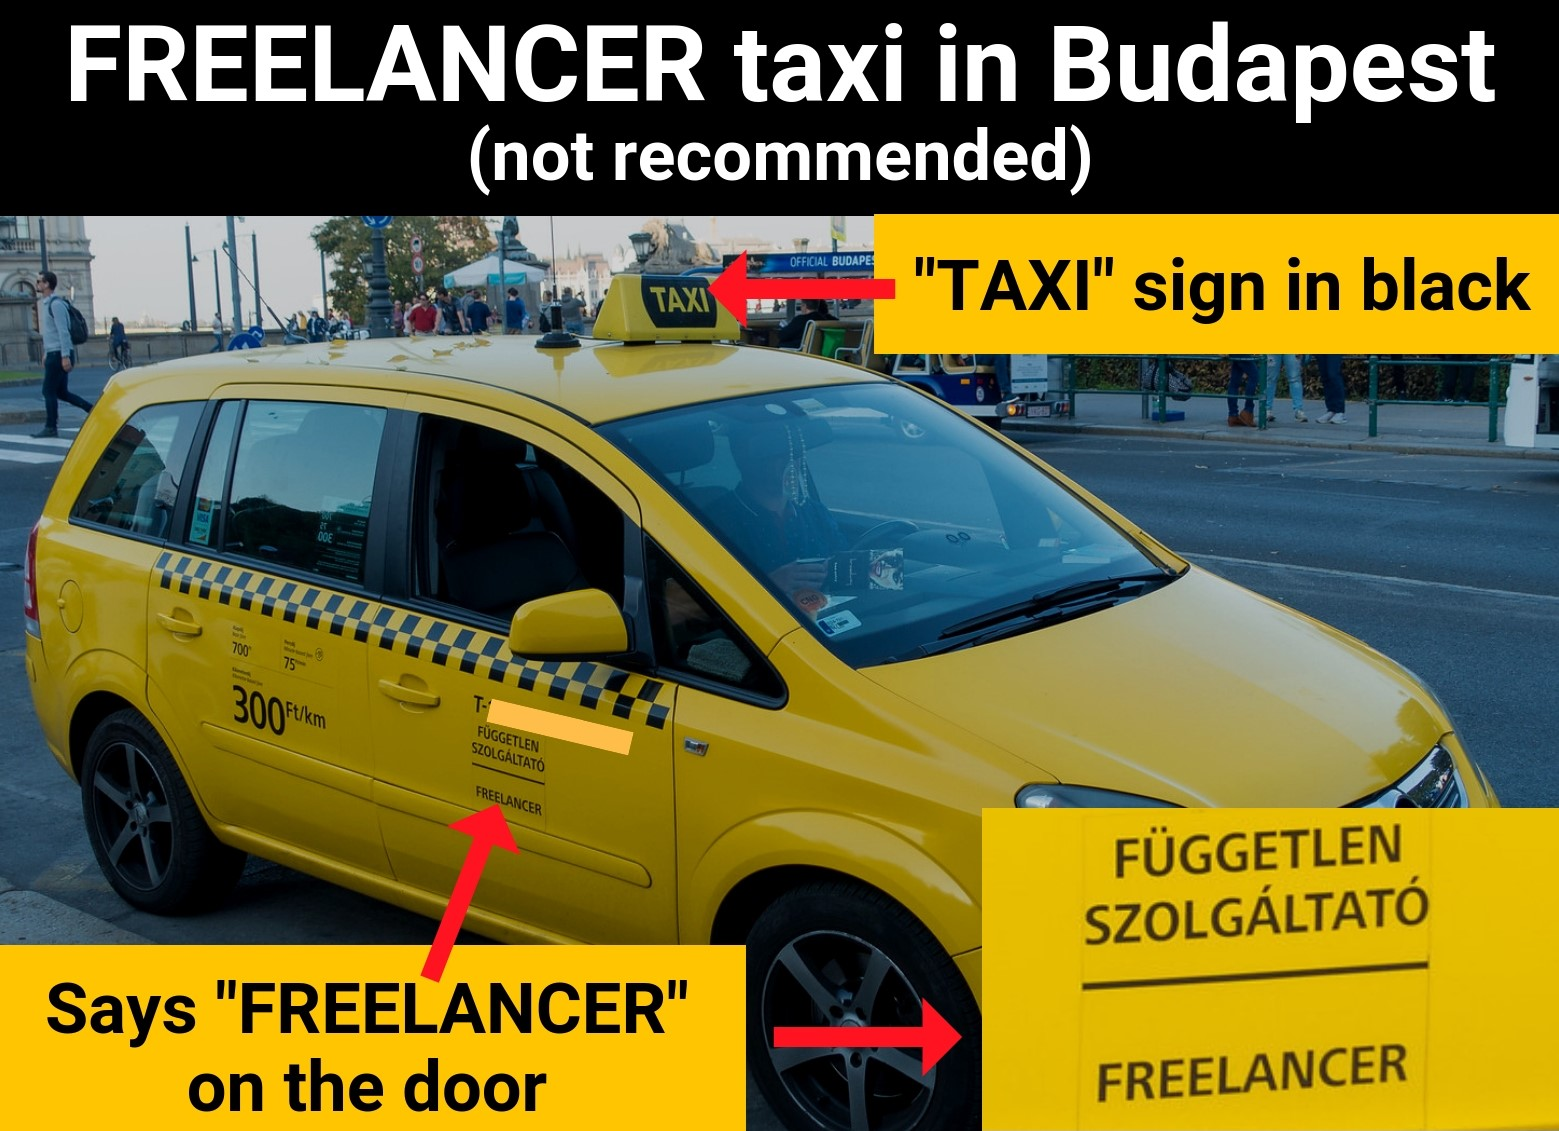 How to spot a freelancer taxi in Budapest